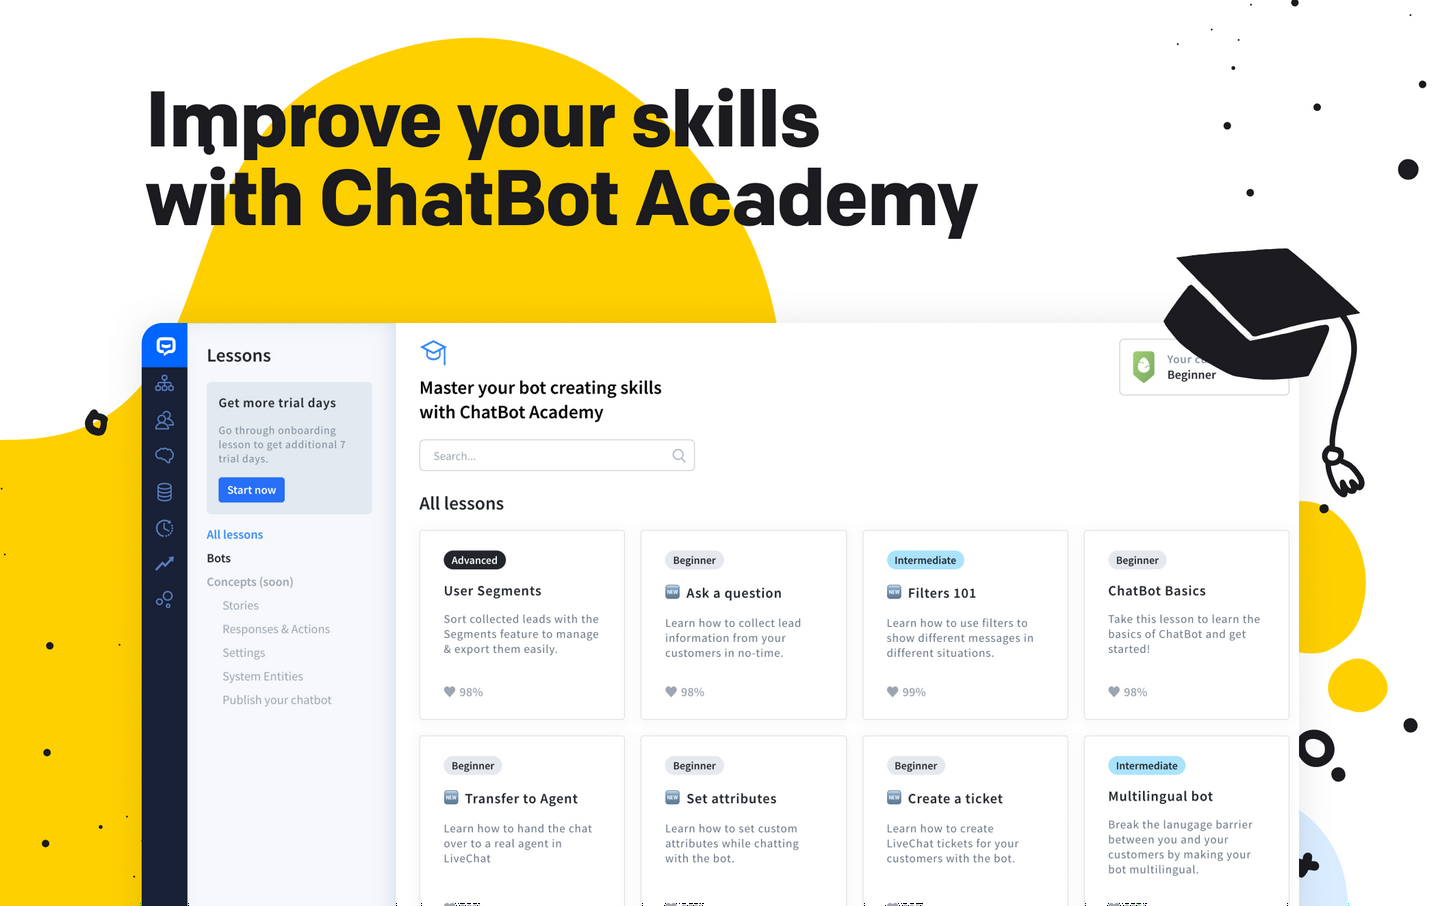 ChatBot Academy